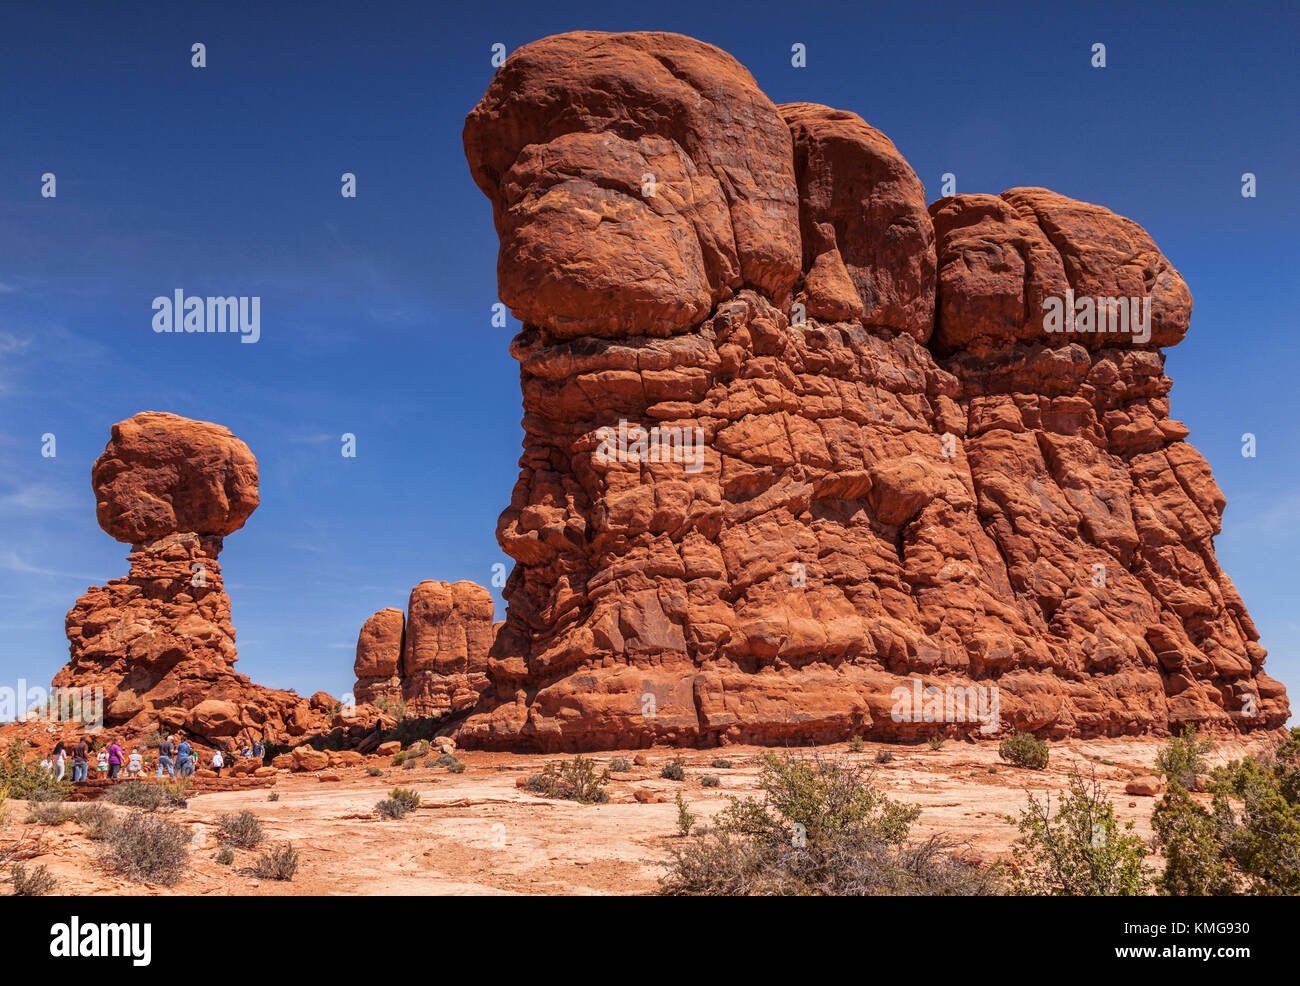 A group of tourists show the massive scale of the eroded sandstone formations in Arches National Park. Balanced - Stock Image